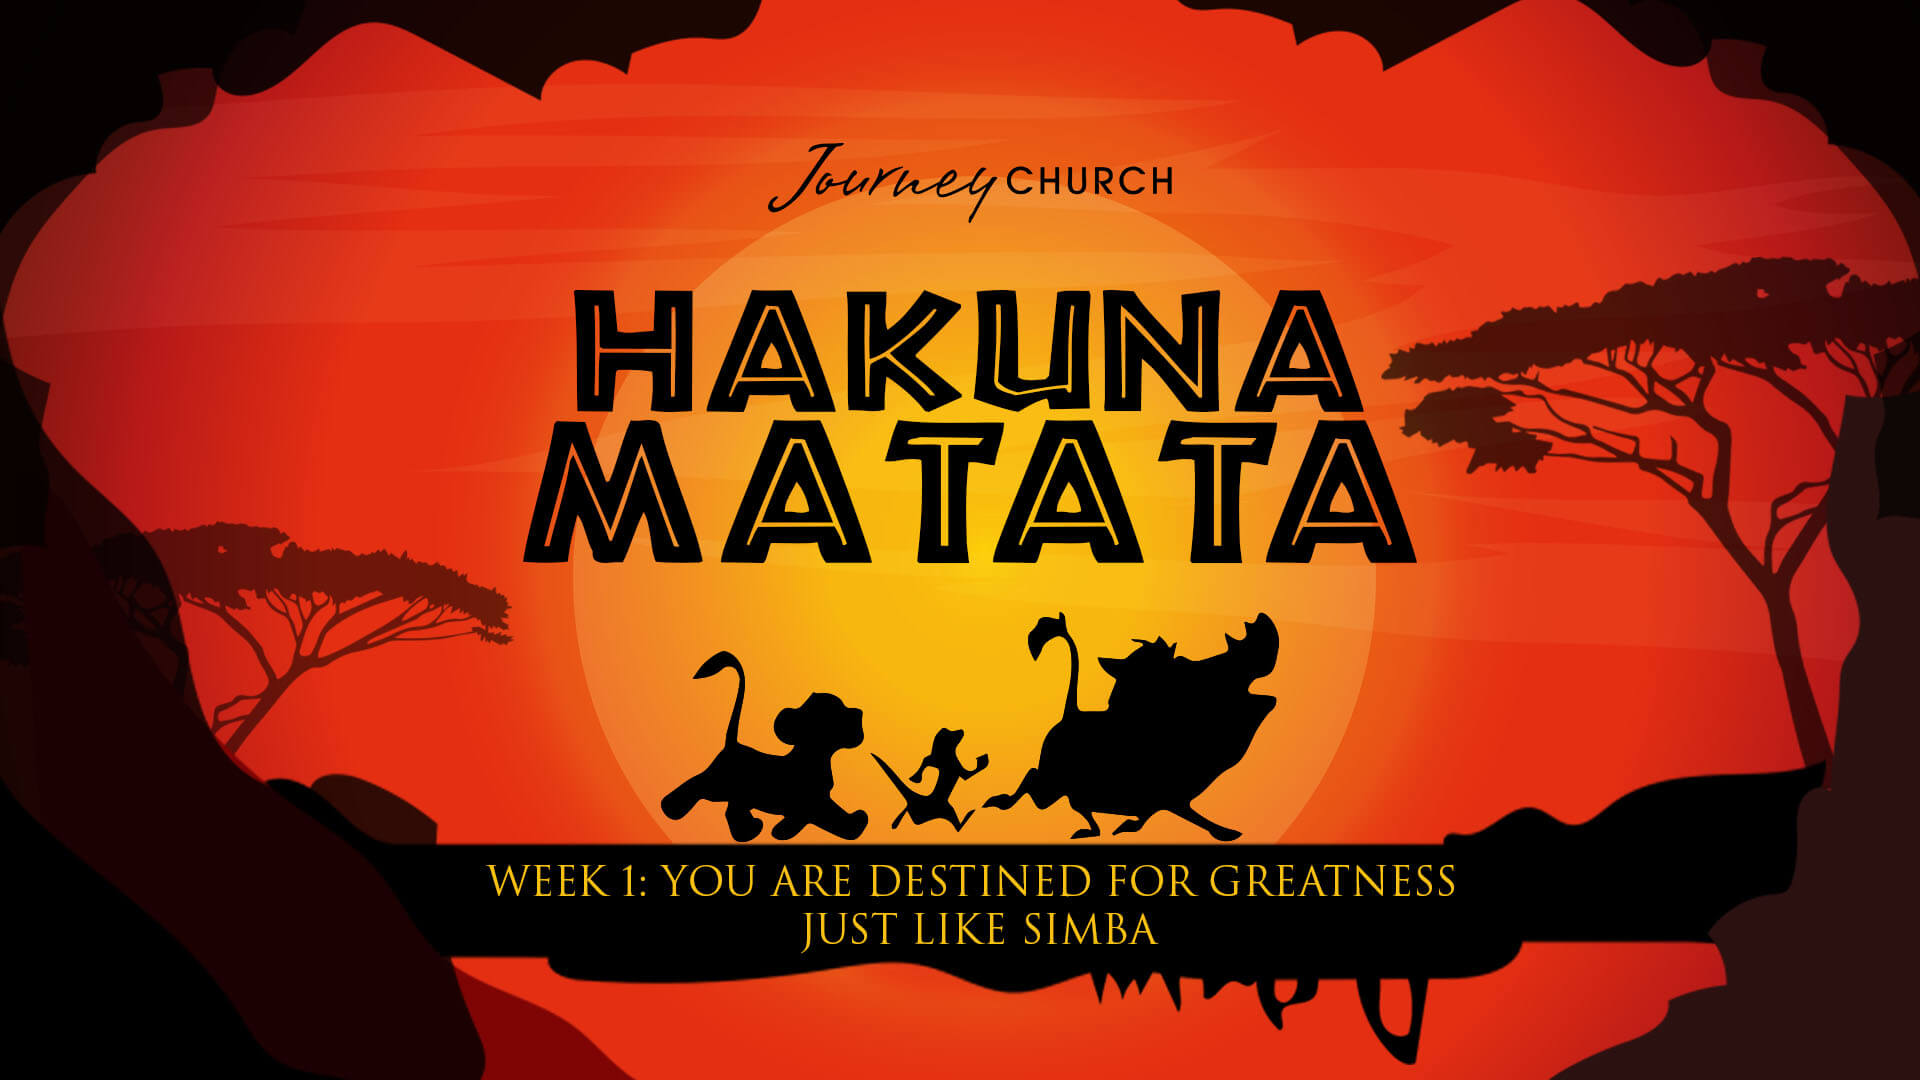 You Are Destined for Greatness | Journey Church | Hakuna